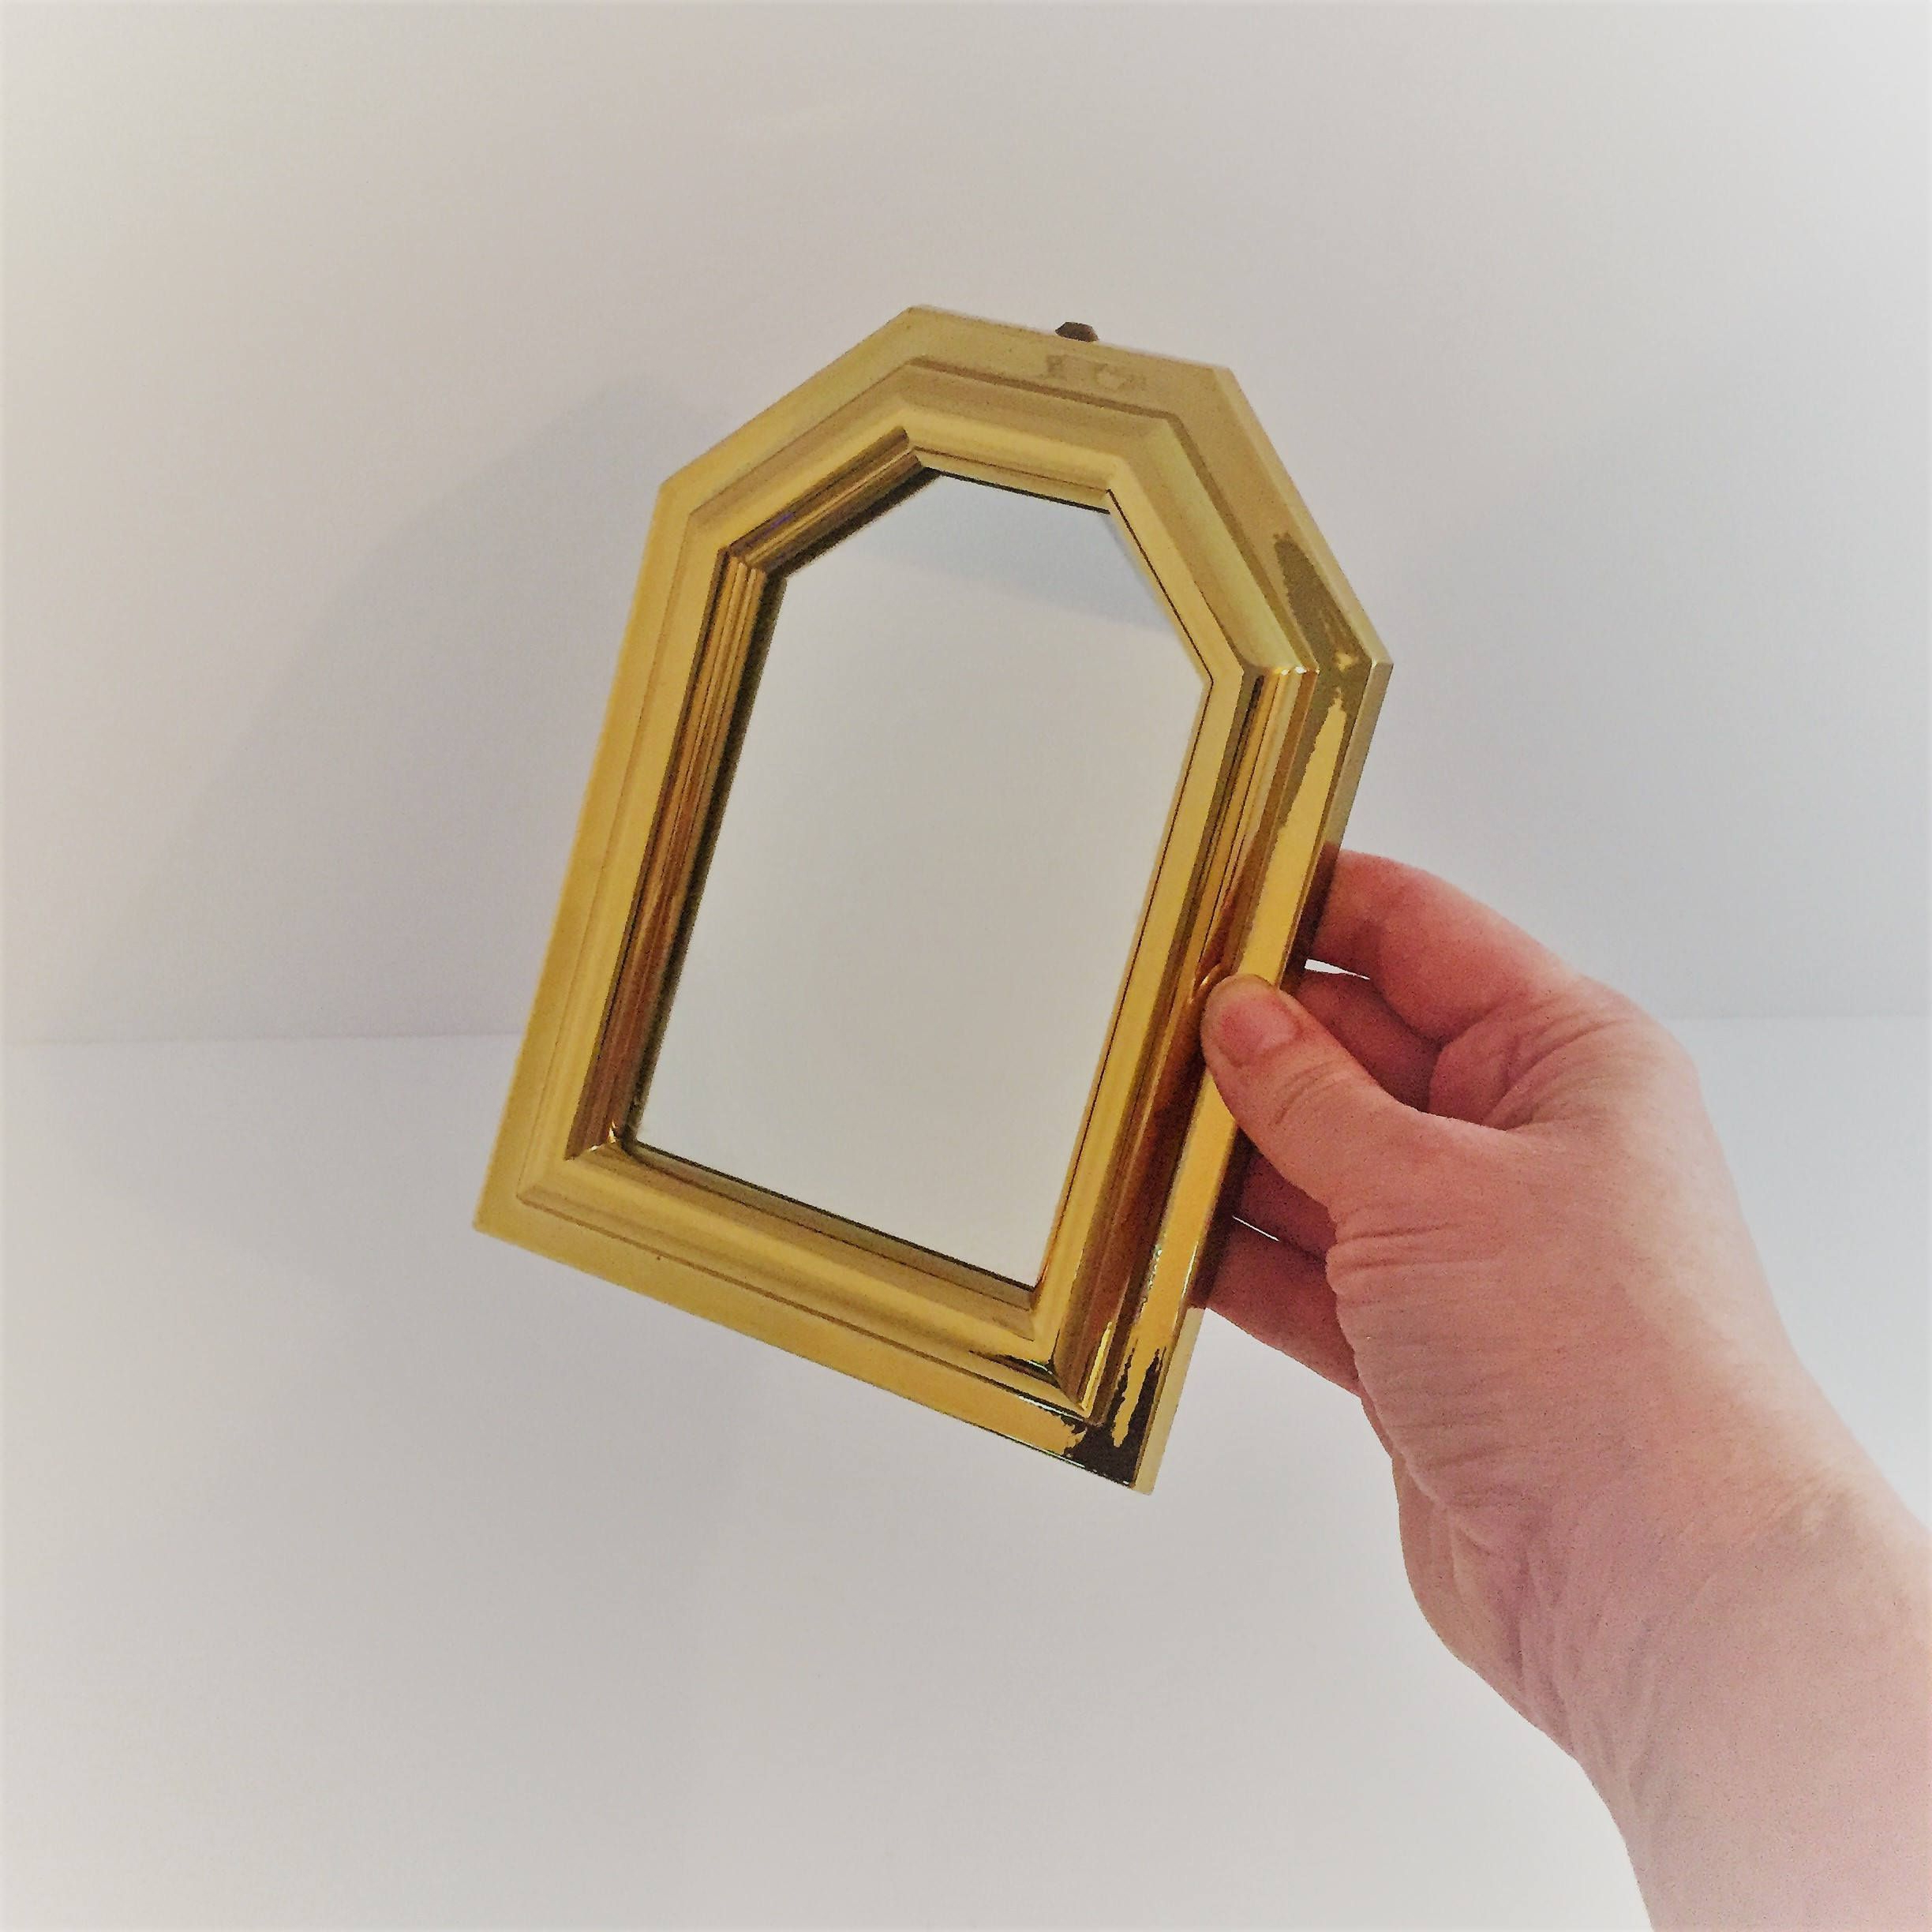 Vintage Gold Mirror Decorative Gold Wall Mirror Lightweight With Trendy Small Gold Wall Mirrors (View 6 of 20)